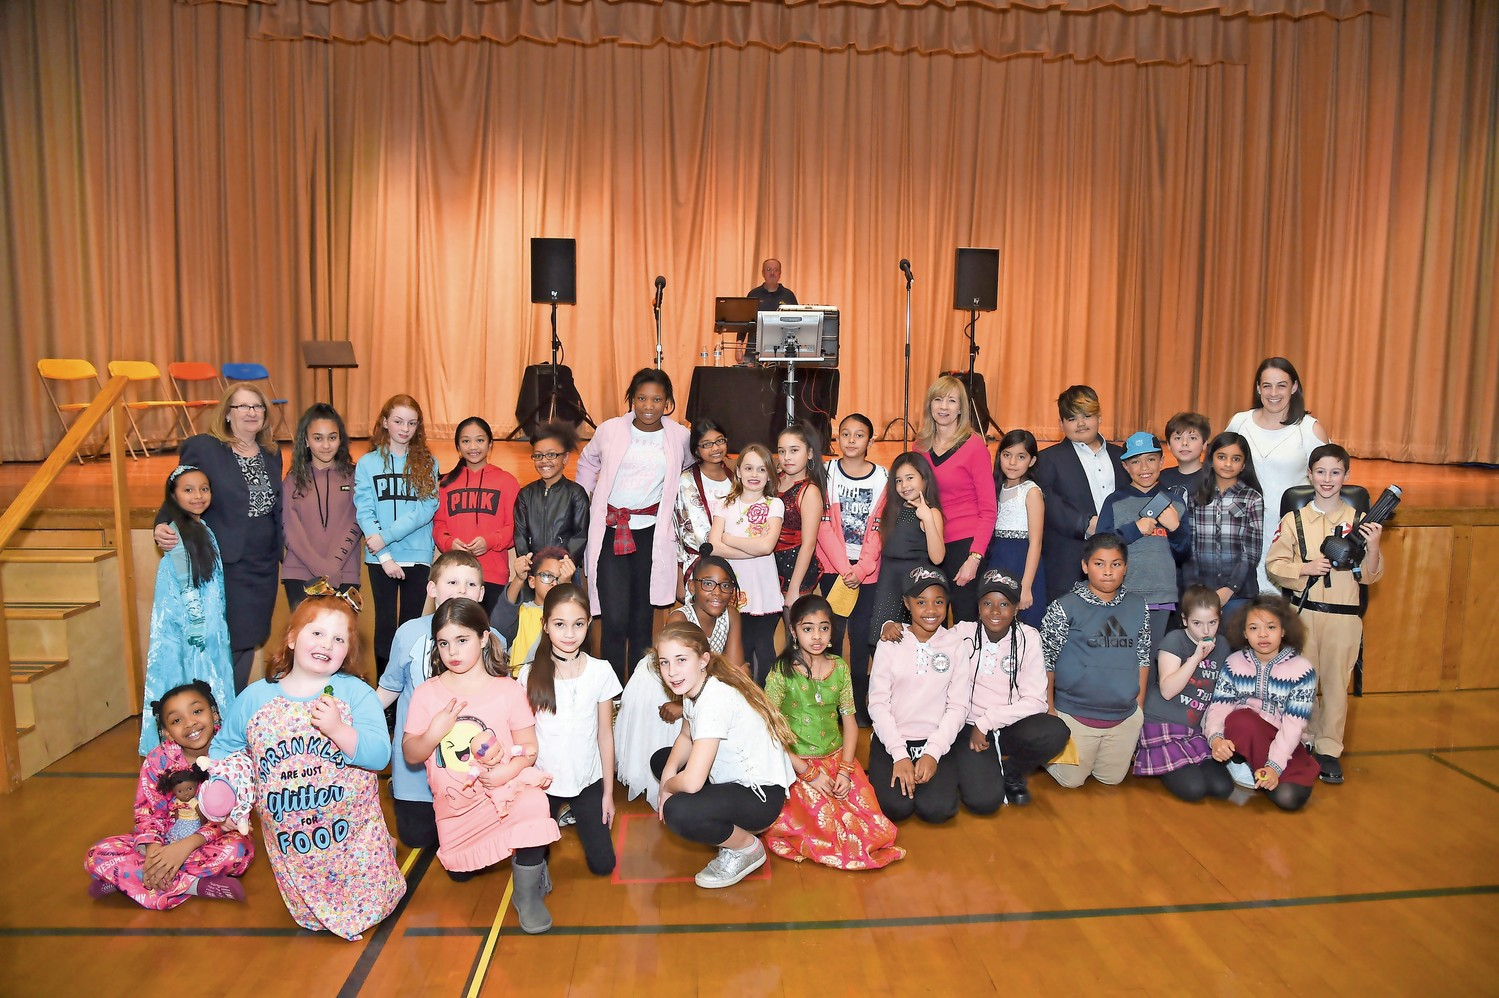 Lawrence Elementary School students sang, danced and played a musical instrument at its first-ever talent show. At the far left is Lawrence Superintendent Dr. Ann Pedersen, in the center is LES Principal Rina Beach and at the far right is Assistant Principal Jackie Beckman.